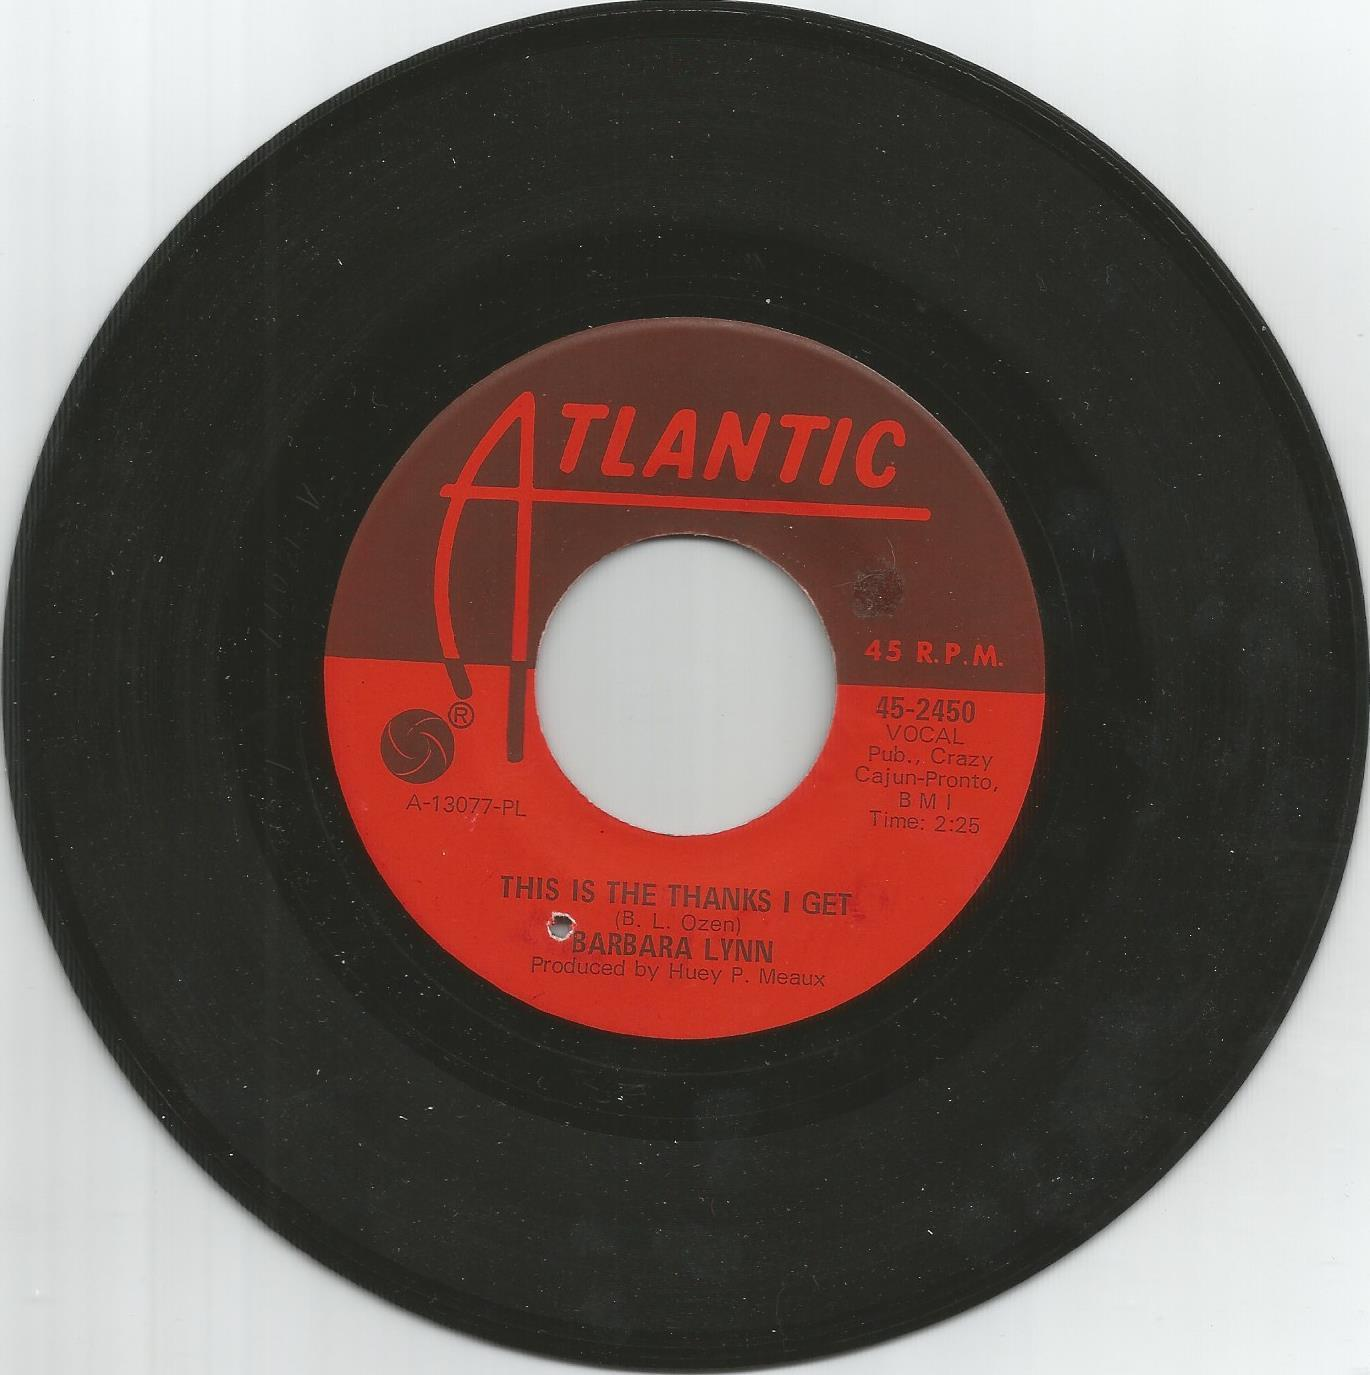 BARBARA LYNN - This is the thanks i get - NORTHERN SOUL - 7'' - 45rpm - LISTEN